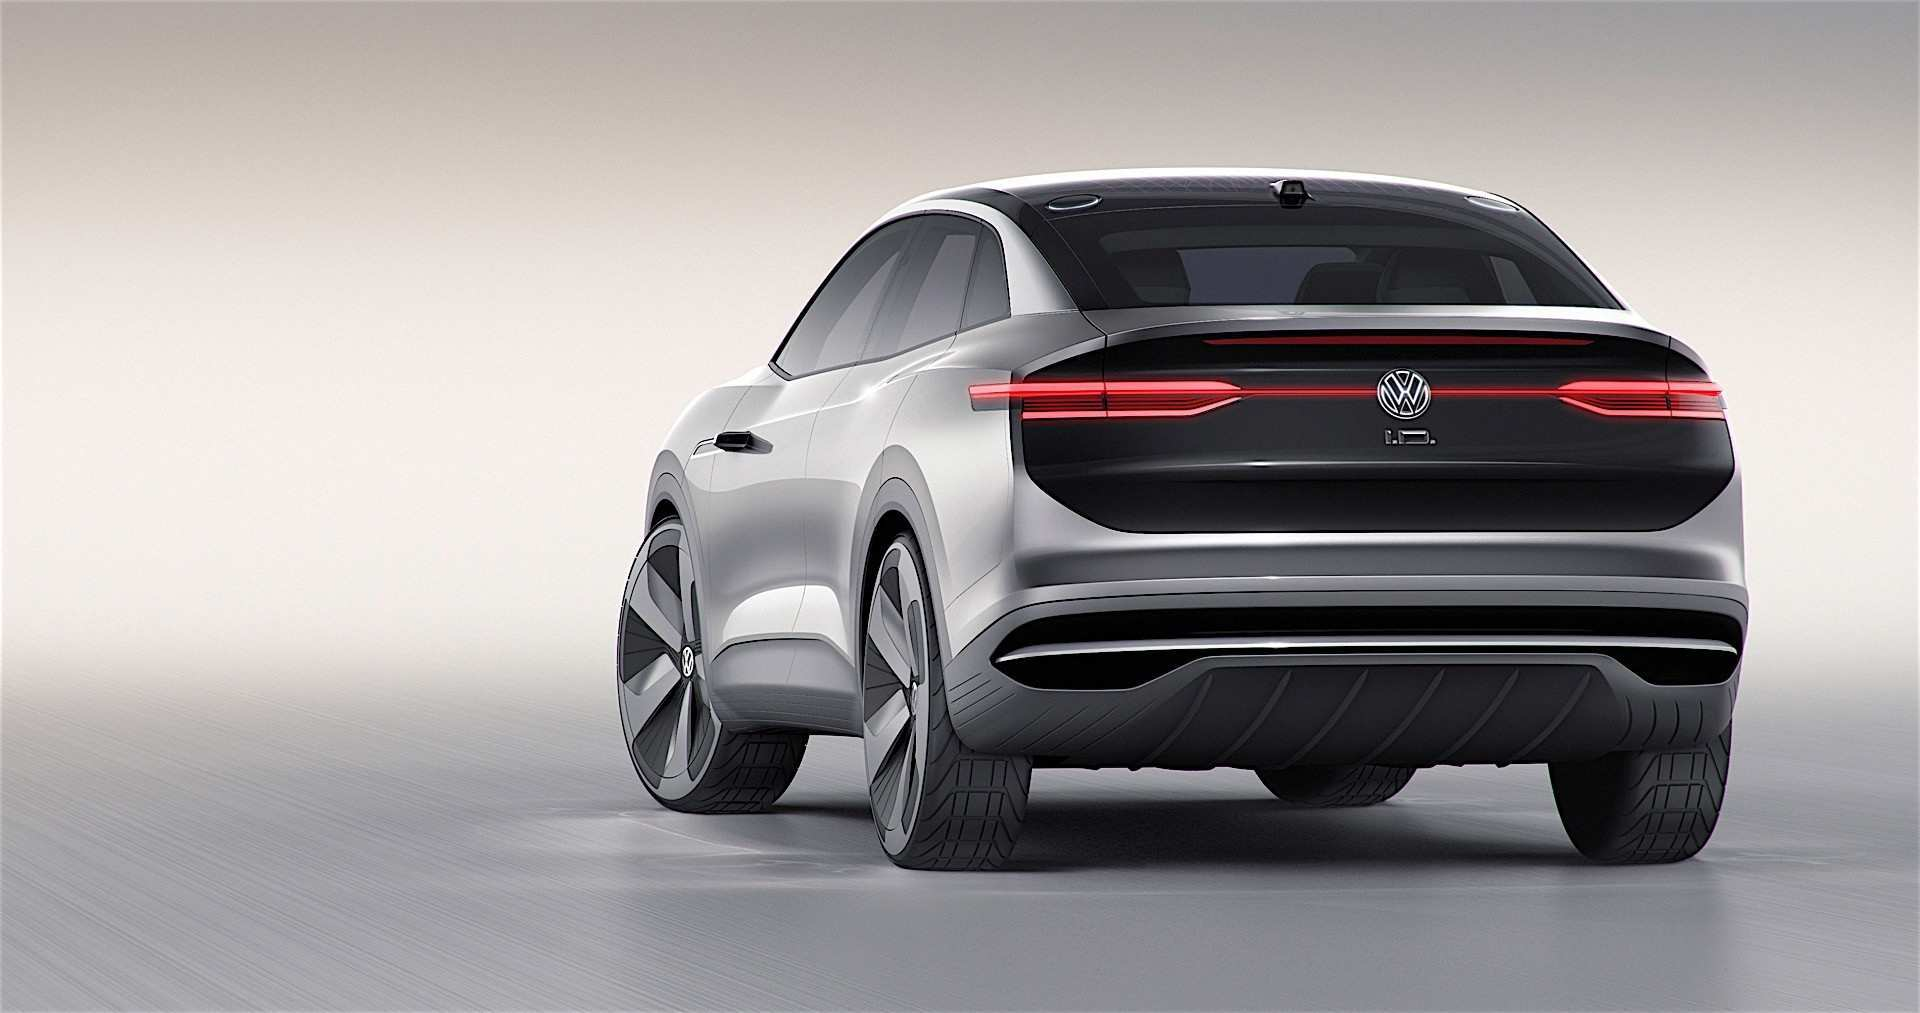 25 Gallery of Crossover Volkswagen 2019 Concept Style for Crossover Volkswagen 2019 Concept